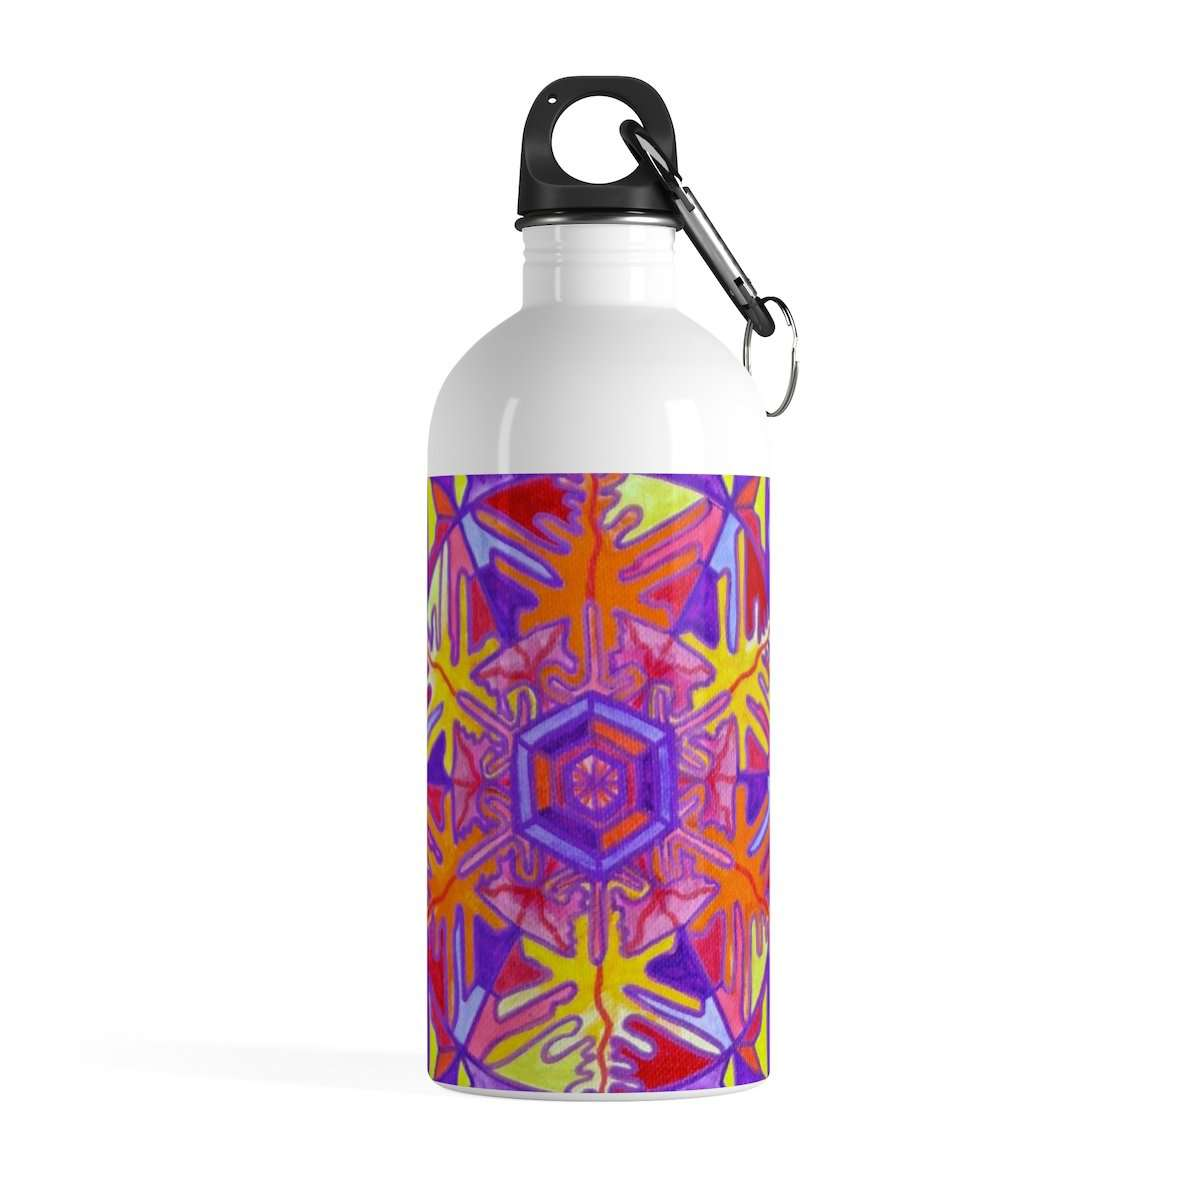 Exhilaration - Stainless Steel Water Bottle